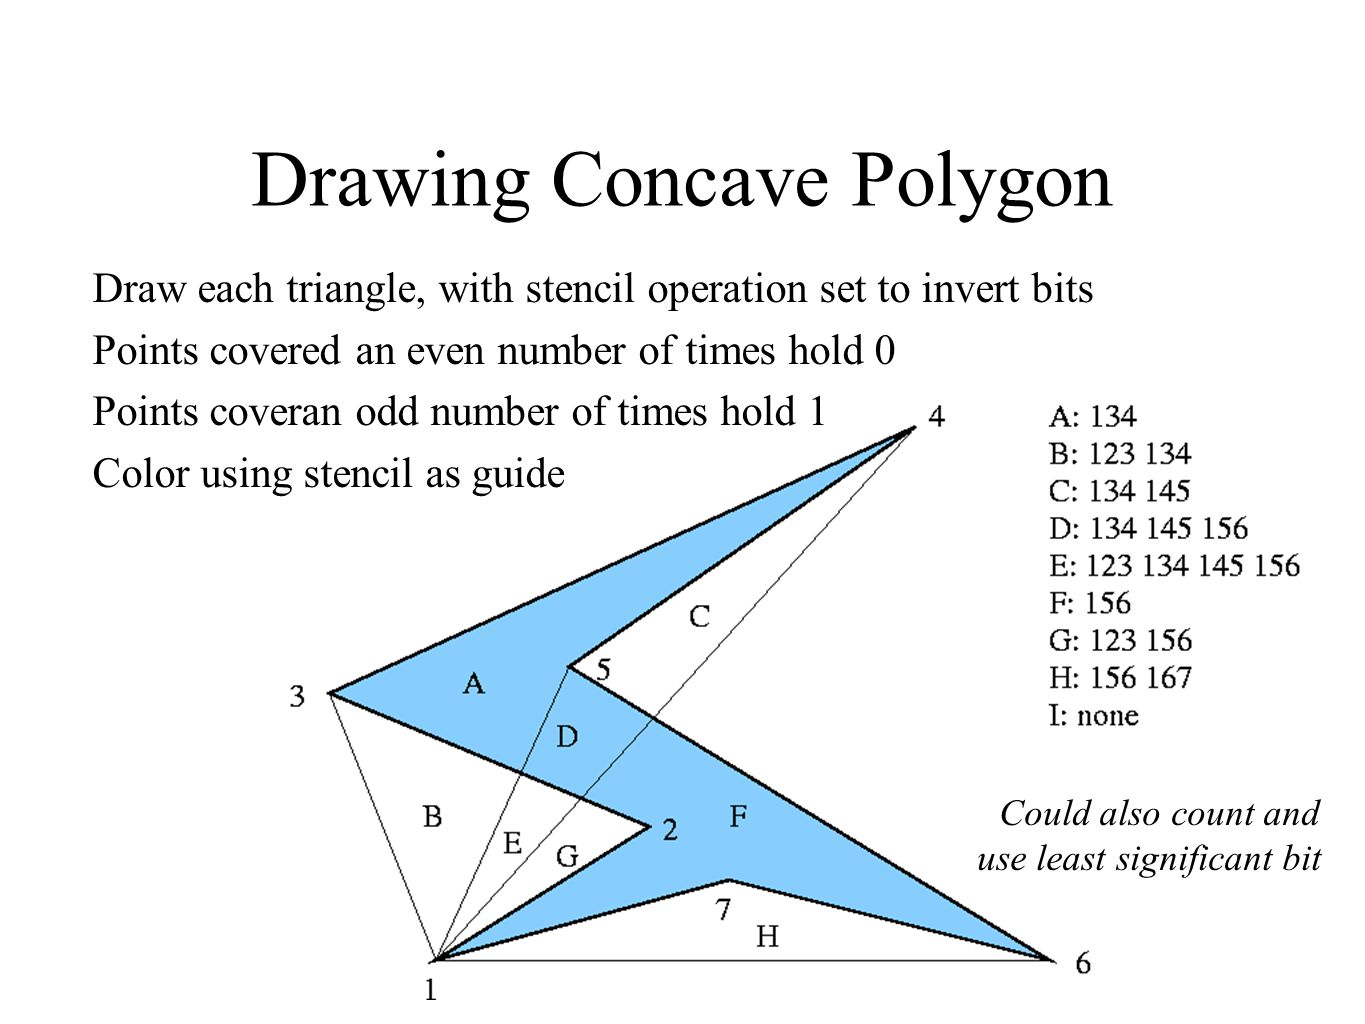 Drawing Concave Polygon Draw each triangle, with stencil operation set to invert bits Points covered an even number of times hold 0 Points coveran odd